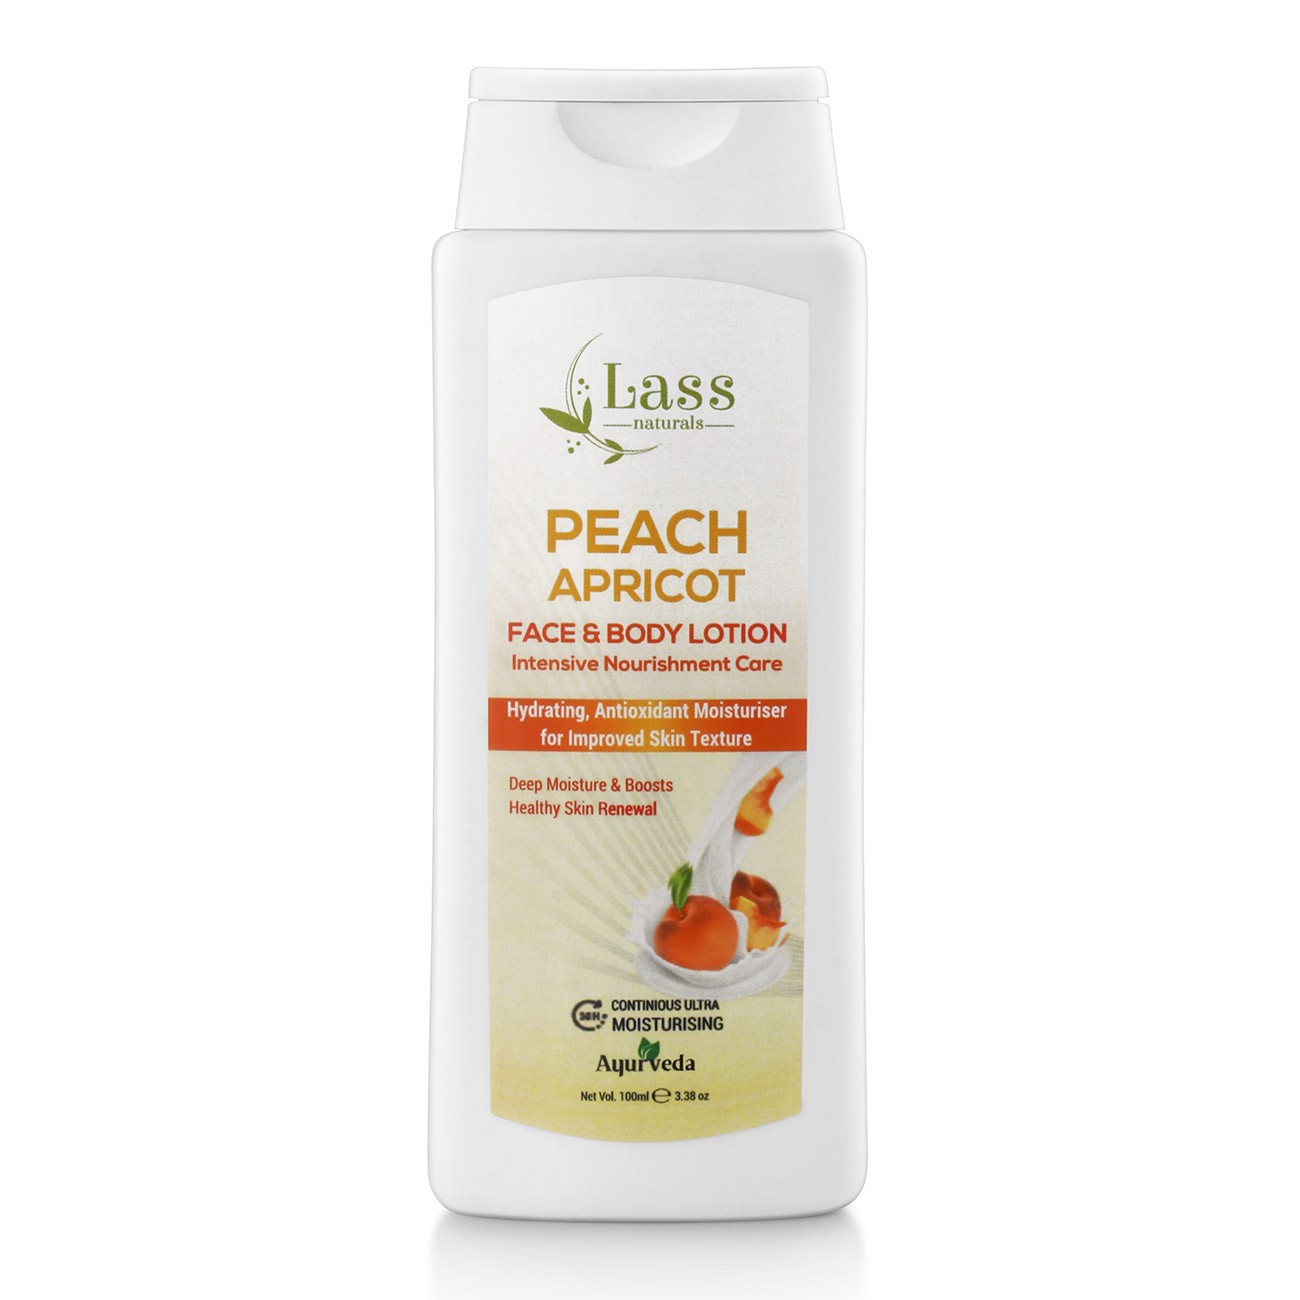 Peach & Apricot Face & Body Moisturising Lotion